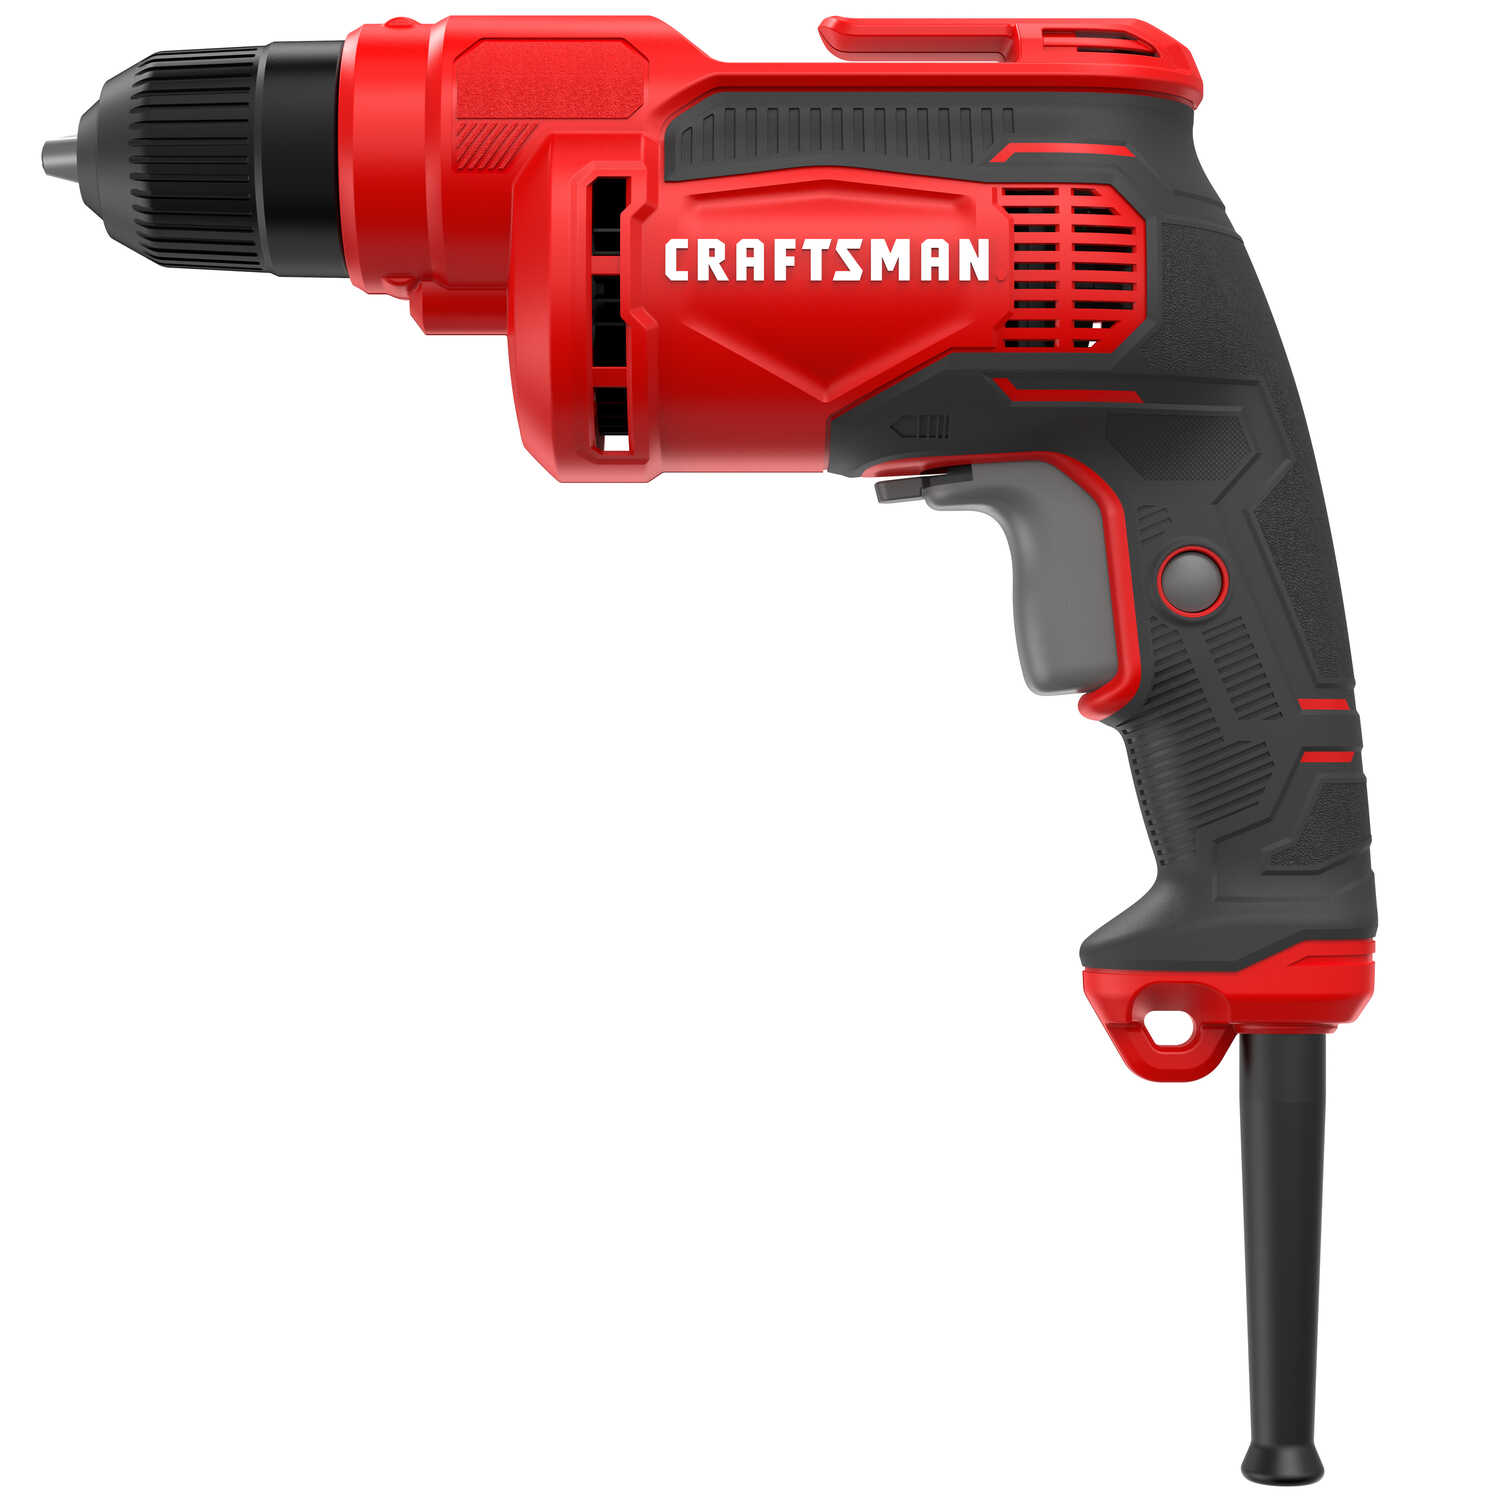 Craftsman  3/8 in. Keyless  Corded Drill Driver  7 amps 2500 rpm Variable Speed 3.17 lb.